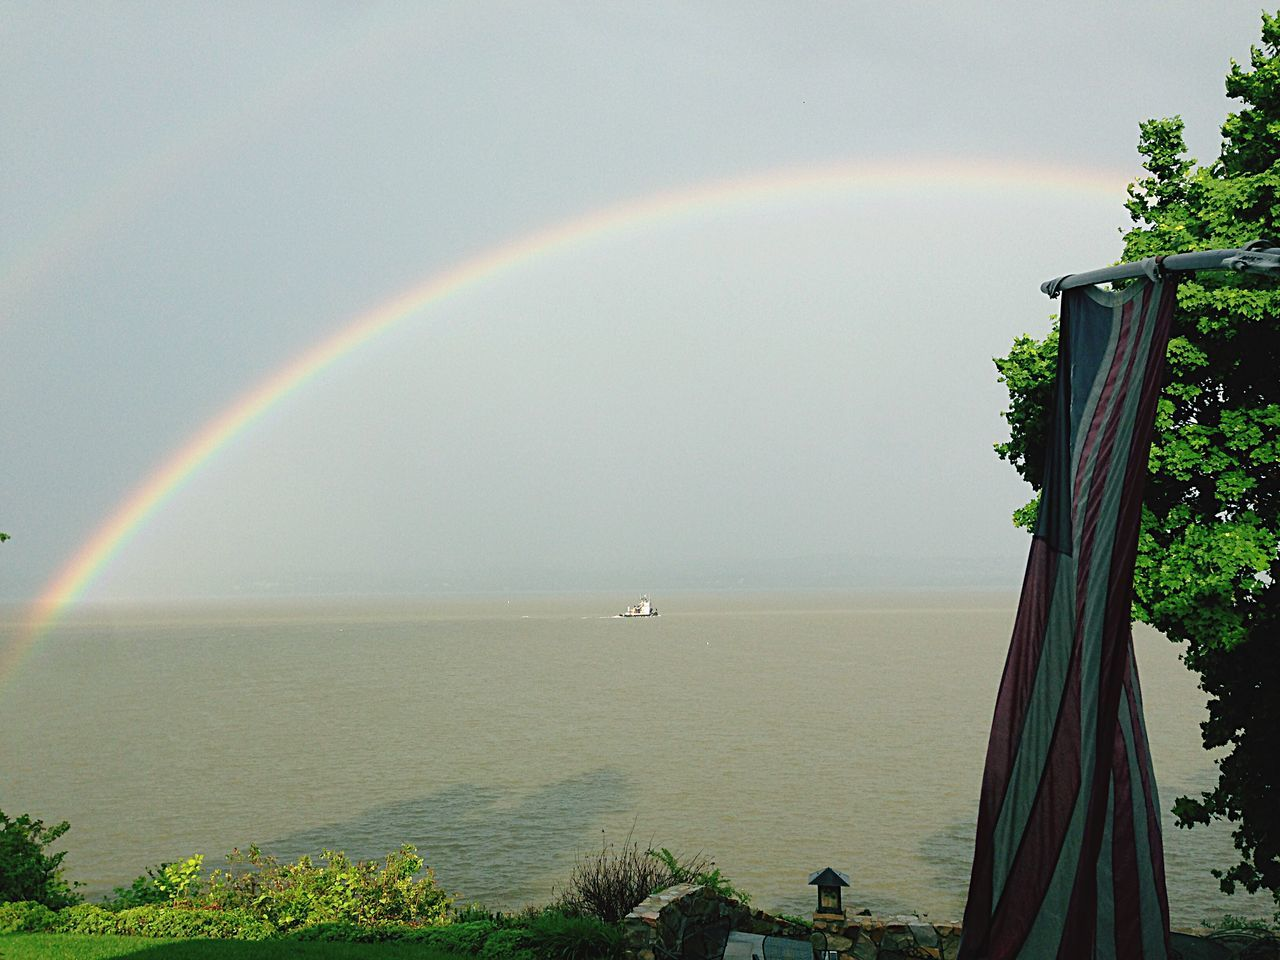 rainbow, nature, beauty in nature, scenics, double rainbow, water, day, sea, tranquil scene, tranquility, outdoors, idyllic, no people, horizon over water, tree, sky, architecture, grass